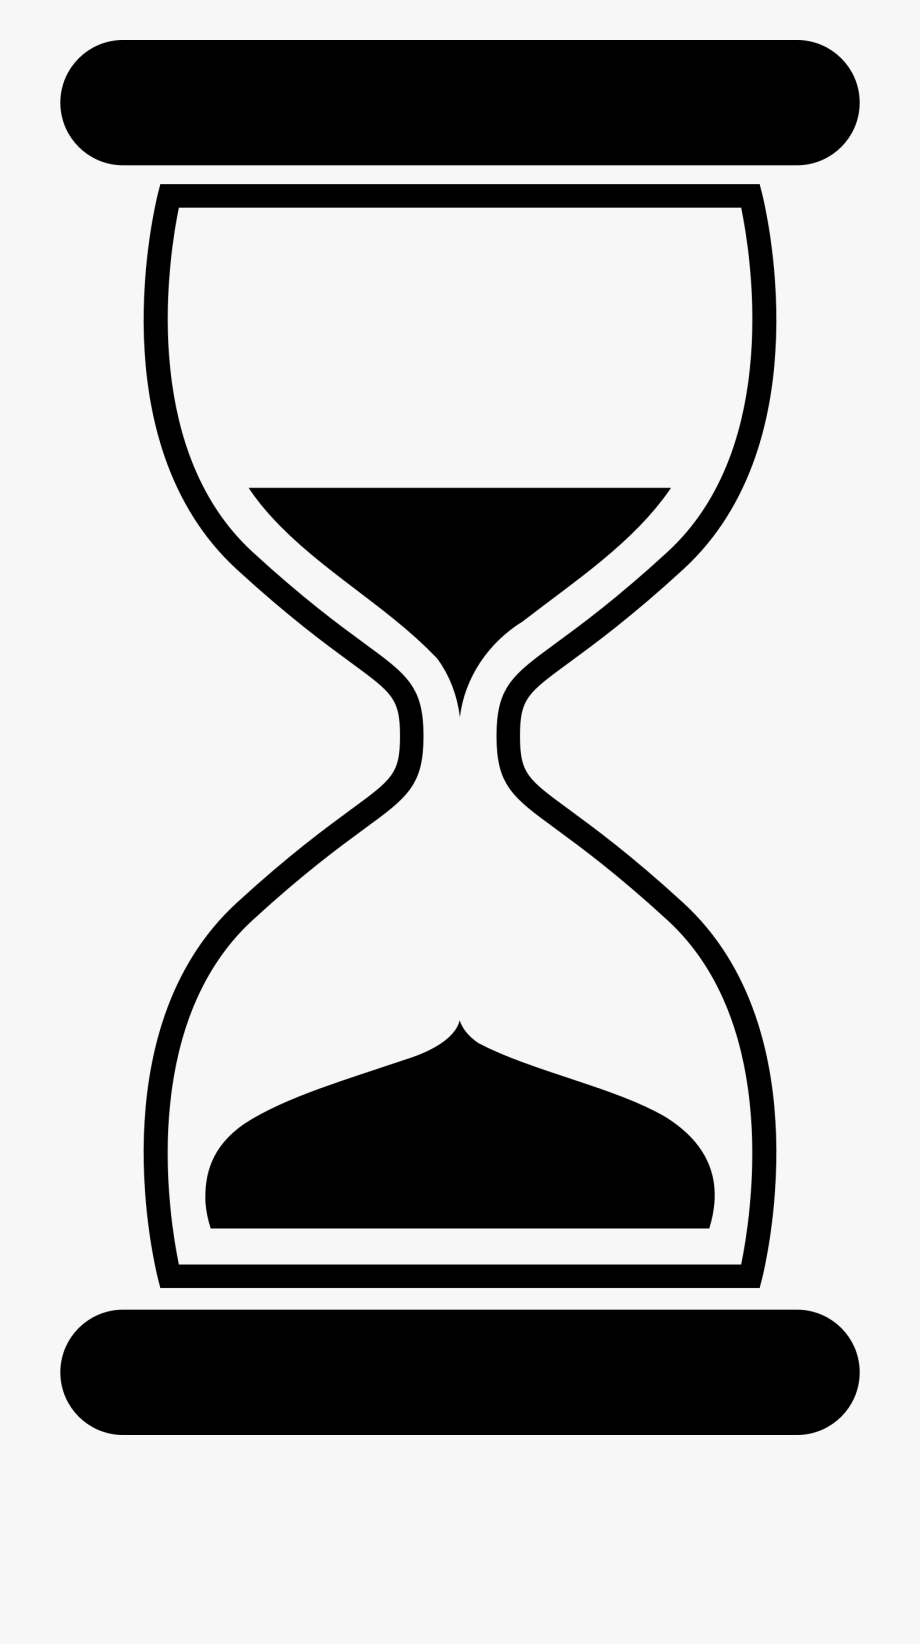 Hourglass clipart basic. Simple cliparts